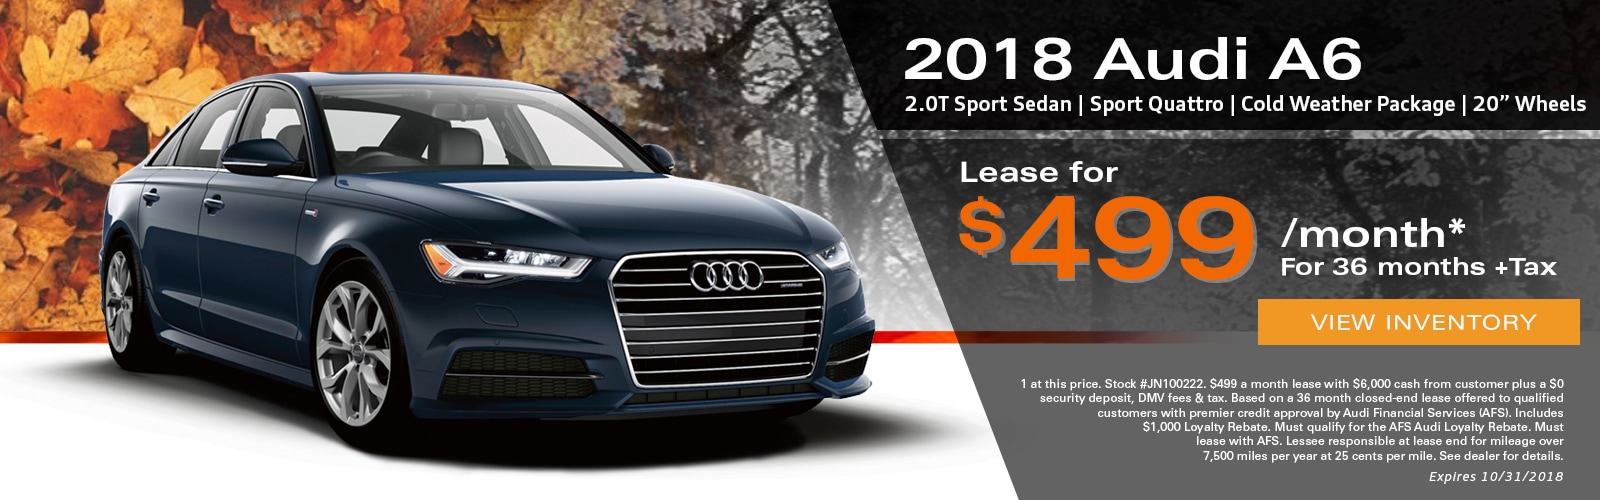 Audi Lease Specials Audi Finance Audi Palo Alto Serving San - Audi leases